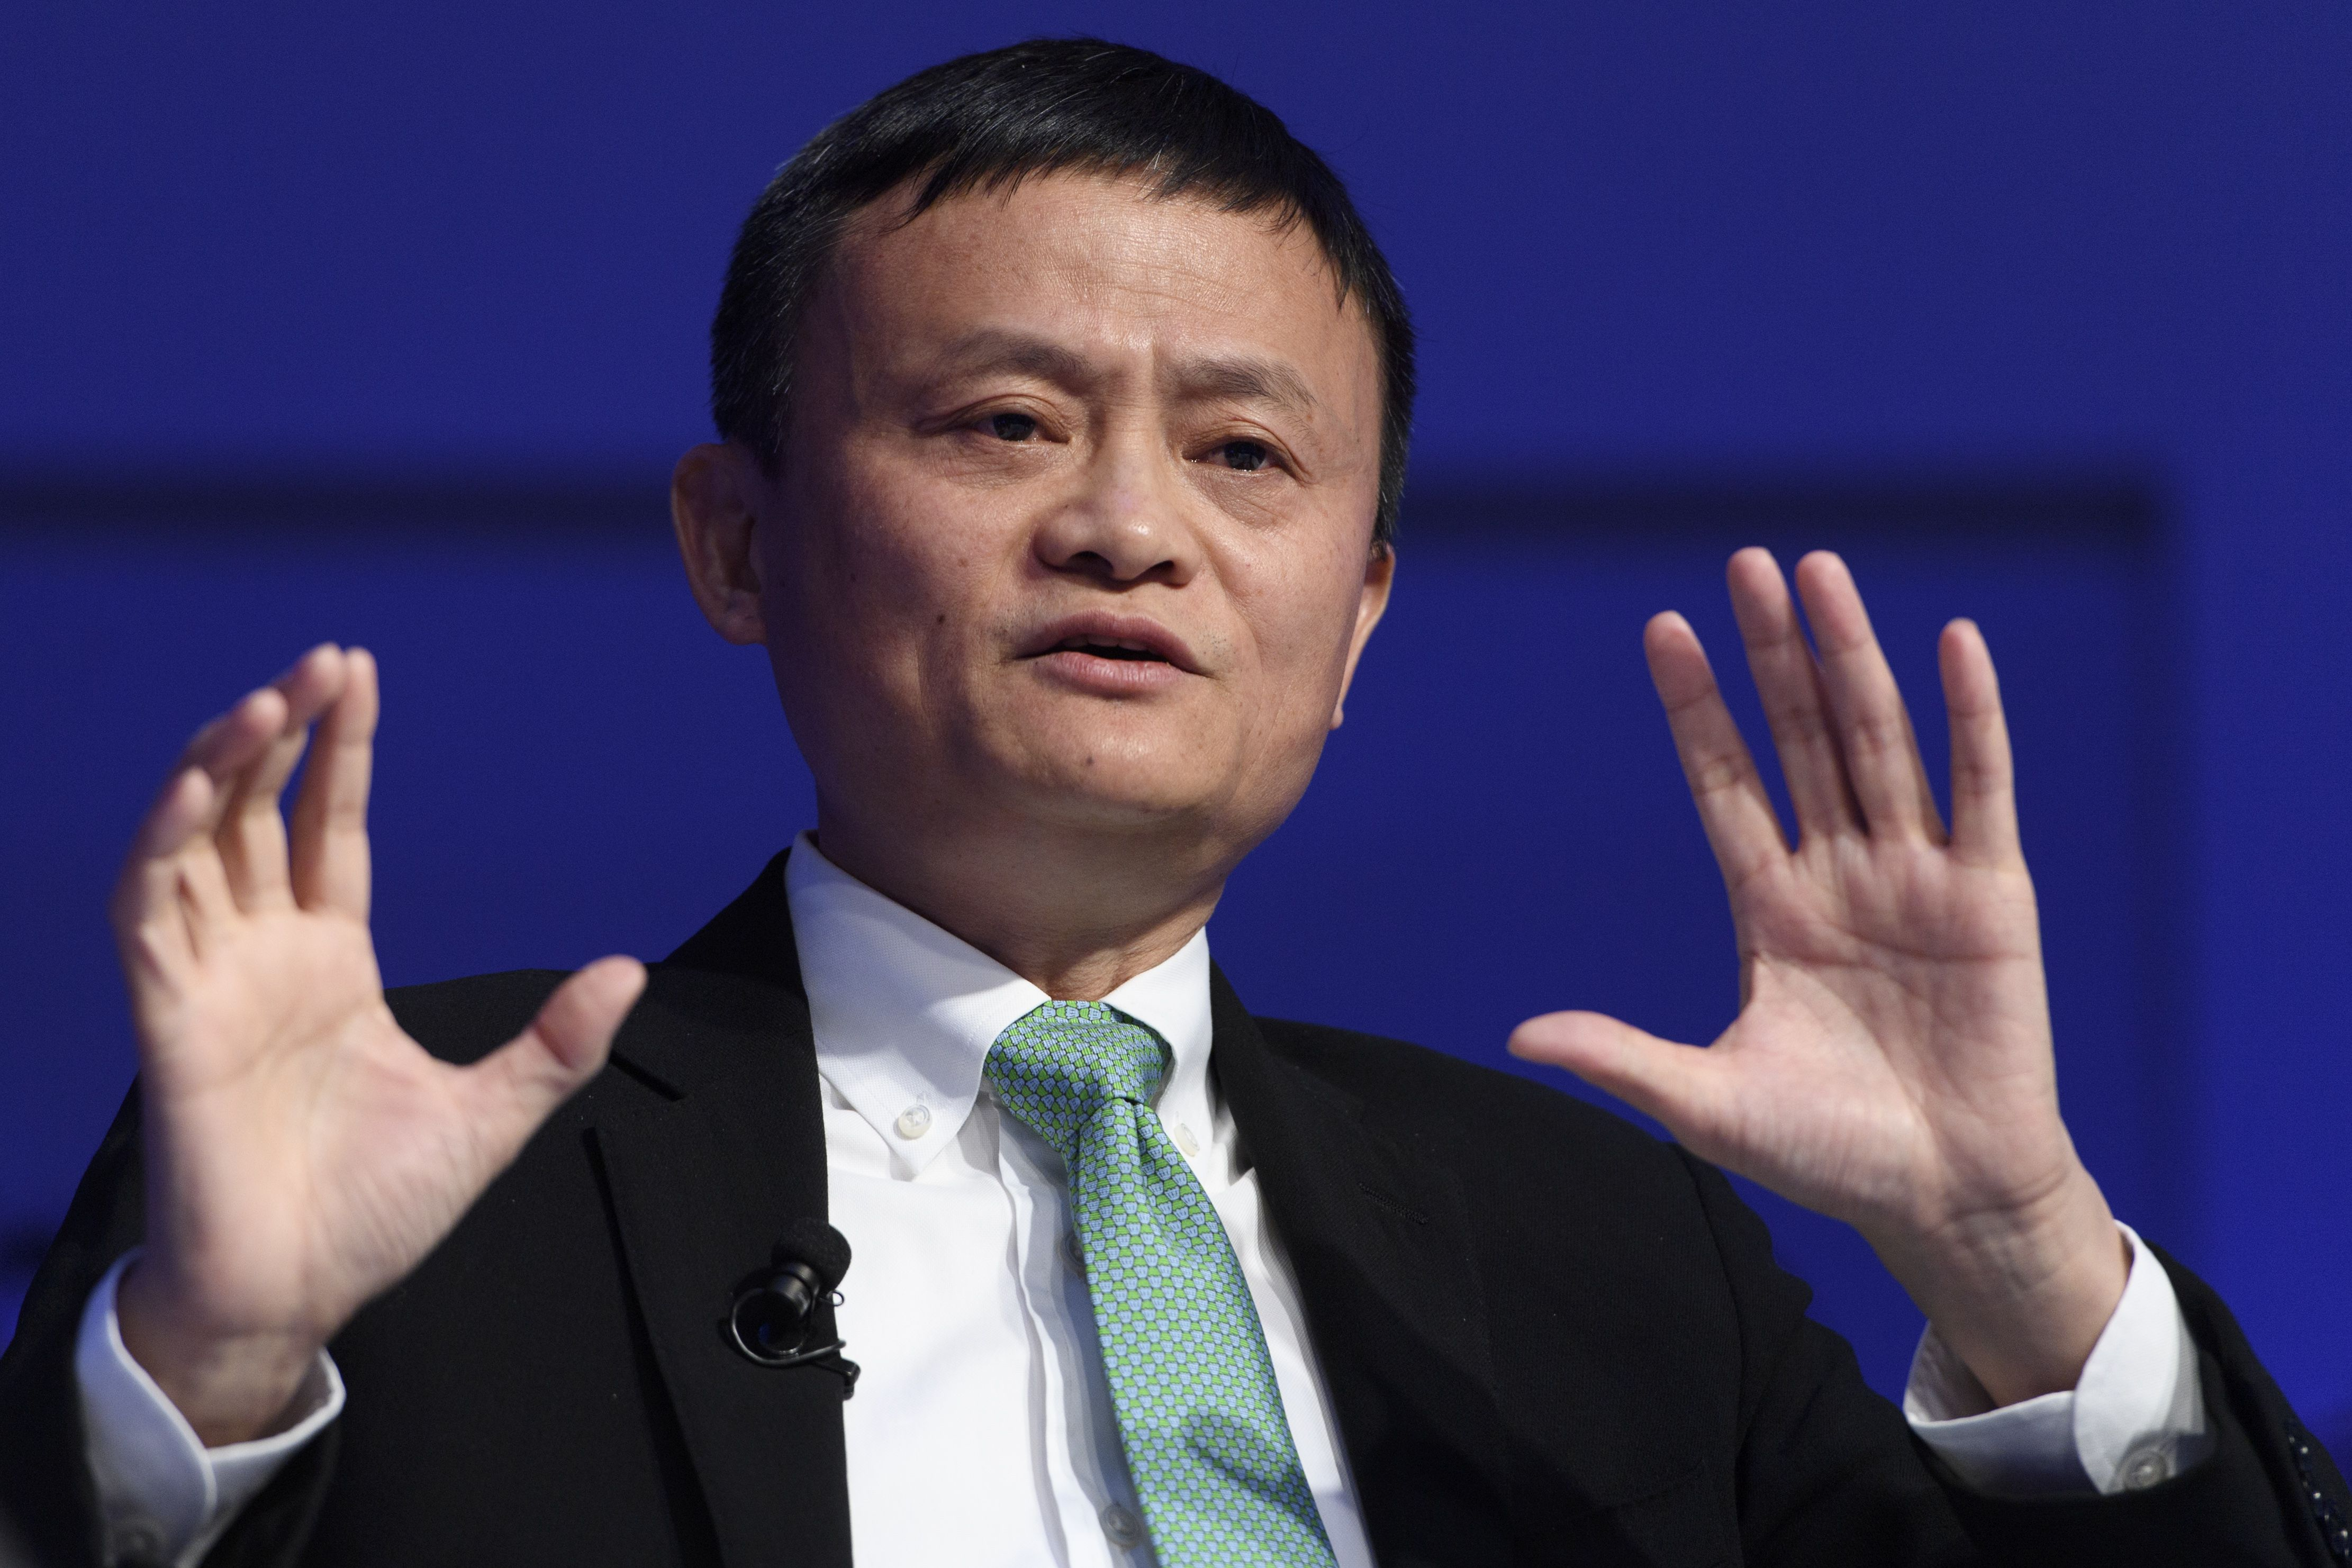 Jack MaWorld Economic Forum, WEF, in Davos, Switzerland - 18 Jan 2017China's Jack Ma, Founder and Executive Chairman of Alibaba Group speaks during a panel session during the 47th annual meeting of the World Economic Forum, WEF, in Davos, Switzerland, 18 January 2017. The meeting brings together enterpreneurs, scientists, chief executive and political leaders in Davos January 17 to 20.